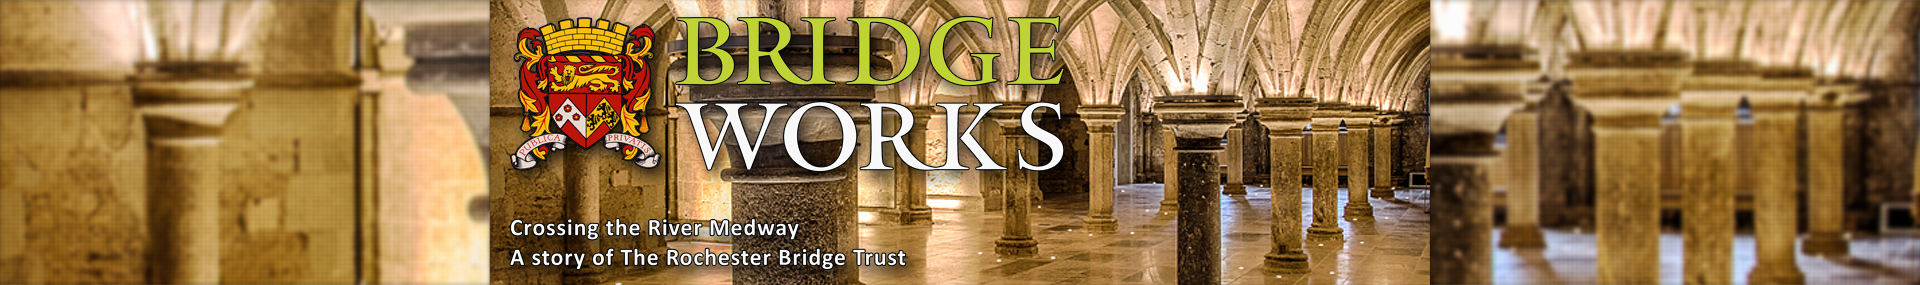 Bridge_Works_Page_Banners-1